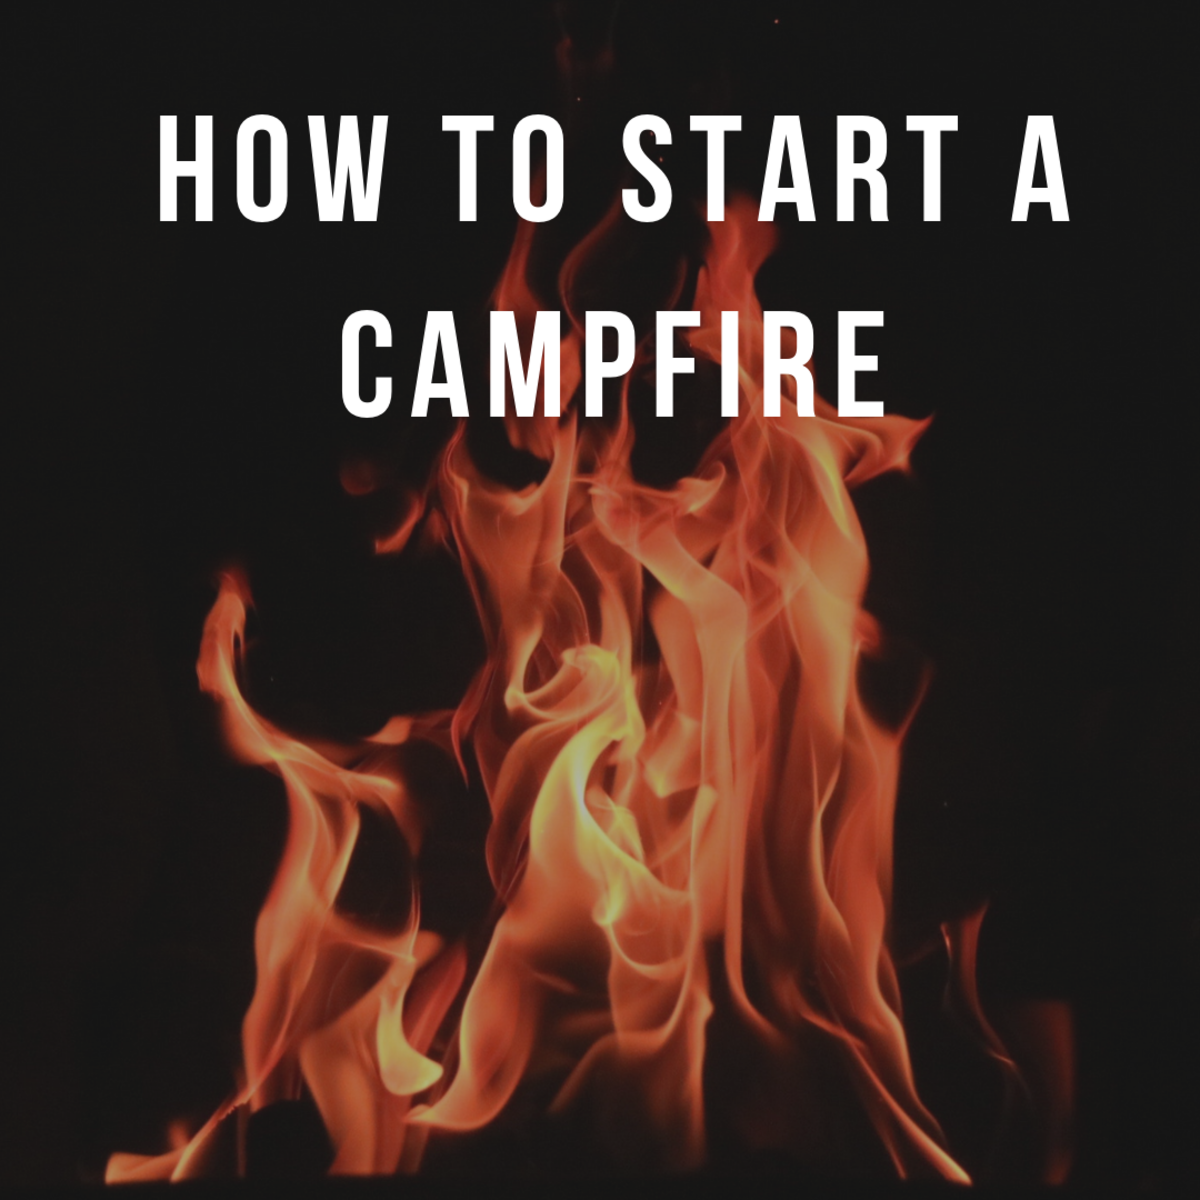 Tips for how to start a campfire when you're camping.